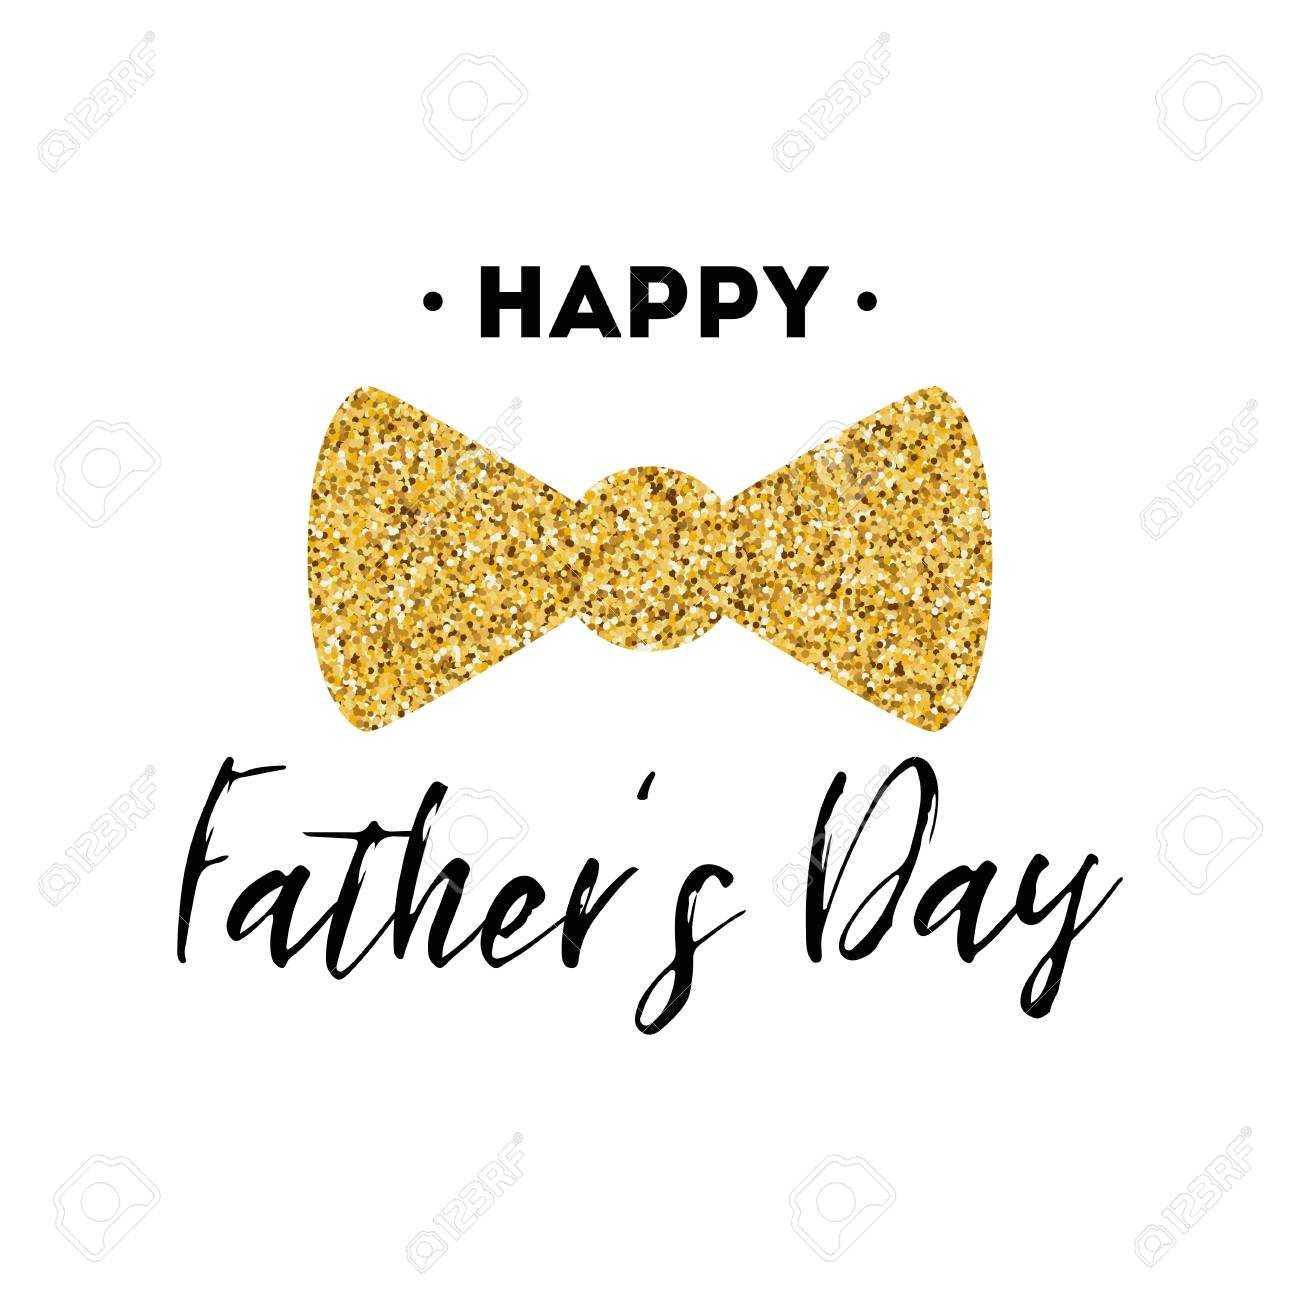 Fathers Day Card Design With Lettering, Golden Bow Tie Butterfly Within Fathers Day Card Template